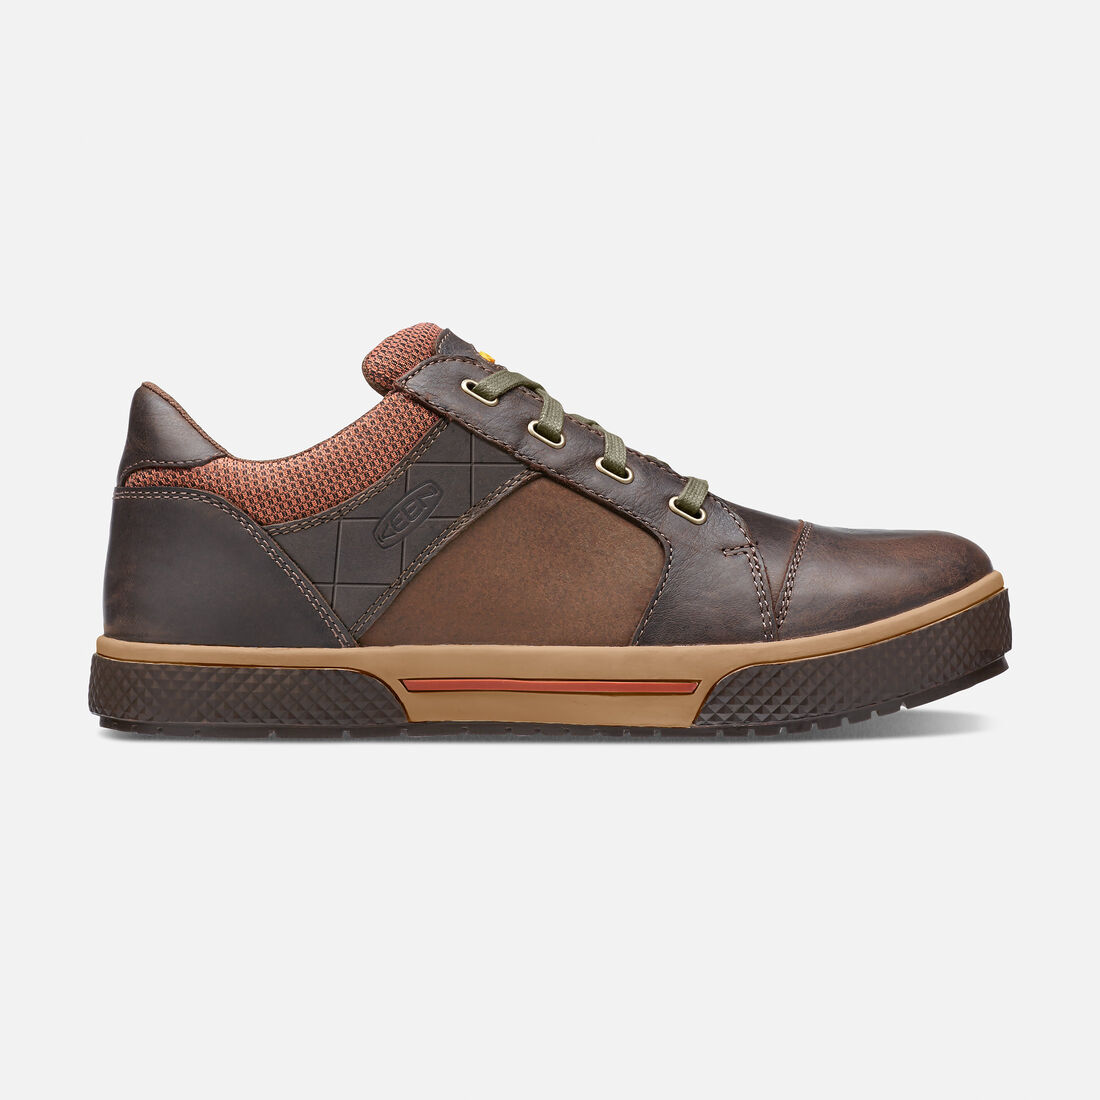 Men's Destin Low (Steel Toe) in Cascade Brown/Bombay Brown - large view.